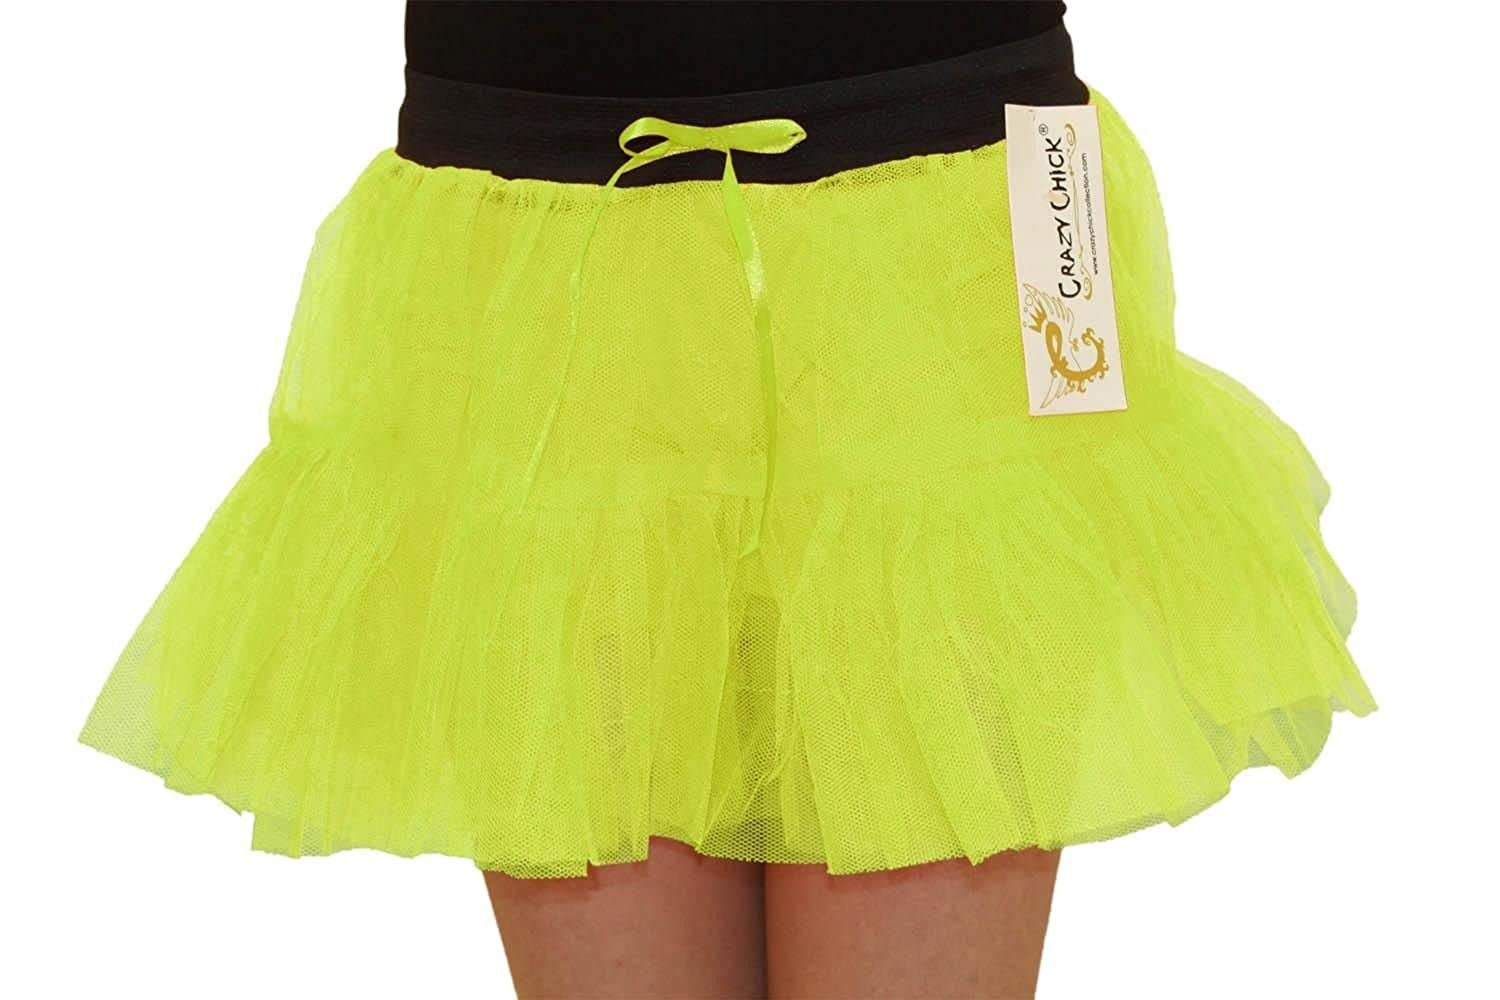 Rimi Hanger Womens 1980s 2 Layers Neon Colour Tutu Skirts